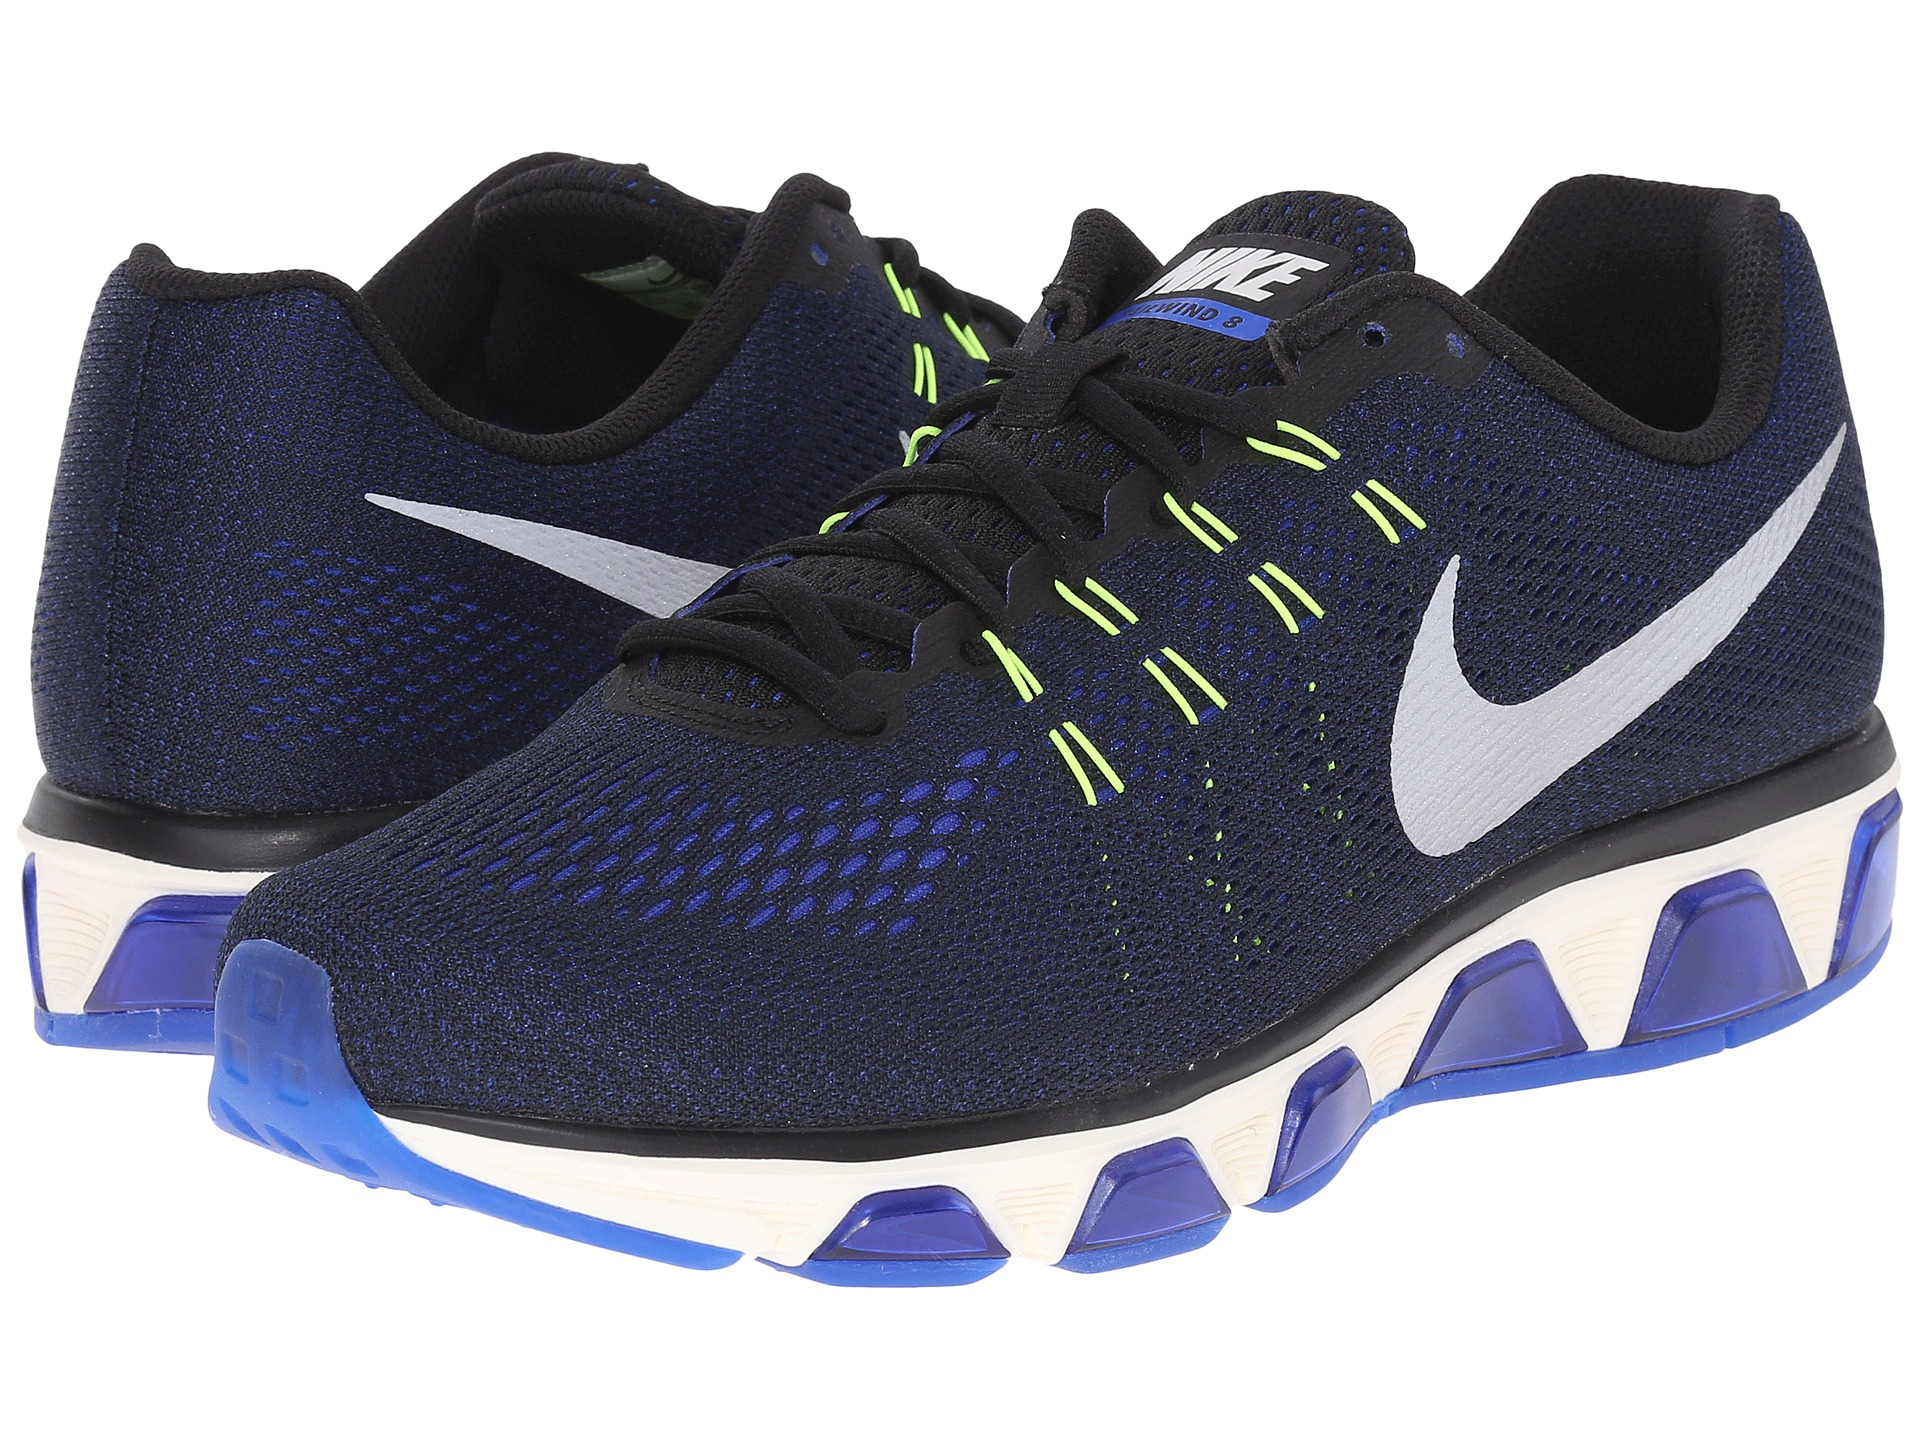 newest 87a26 1ddf7 ... switzerland lyst nike air max tailwind 8 in blue for men 0e81f a04e0